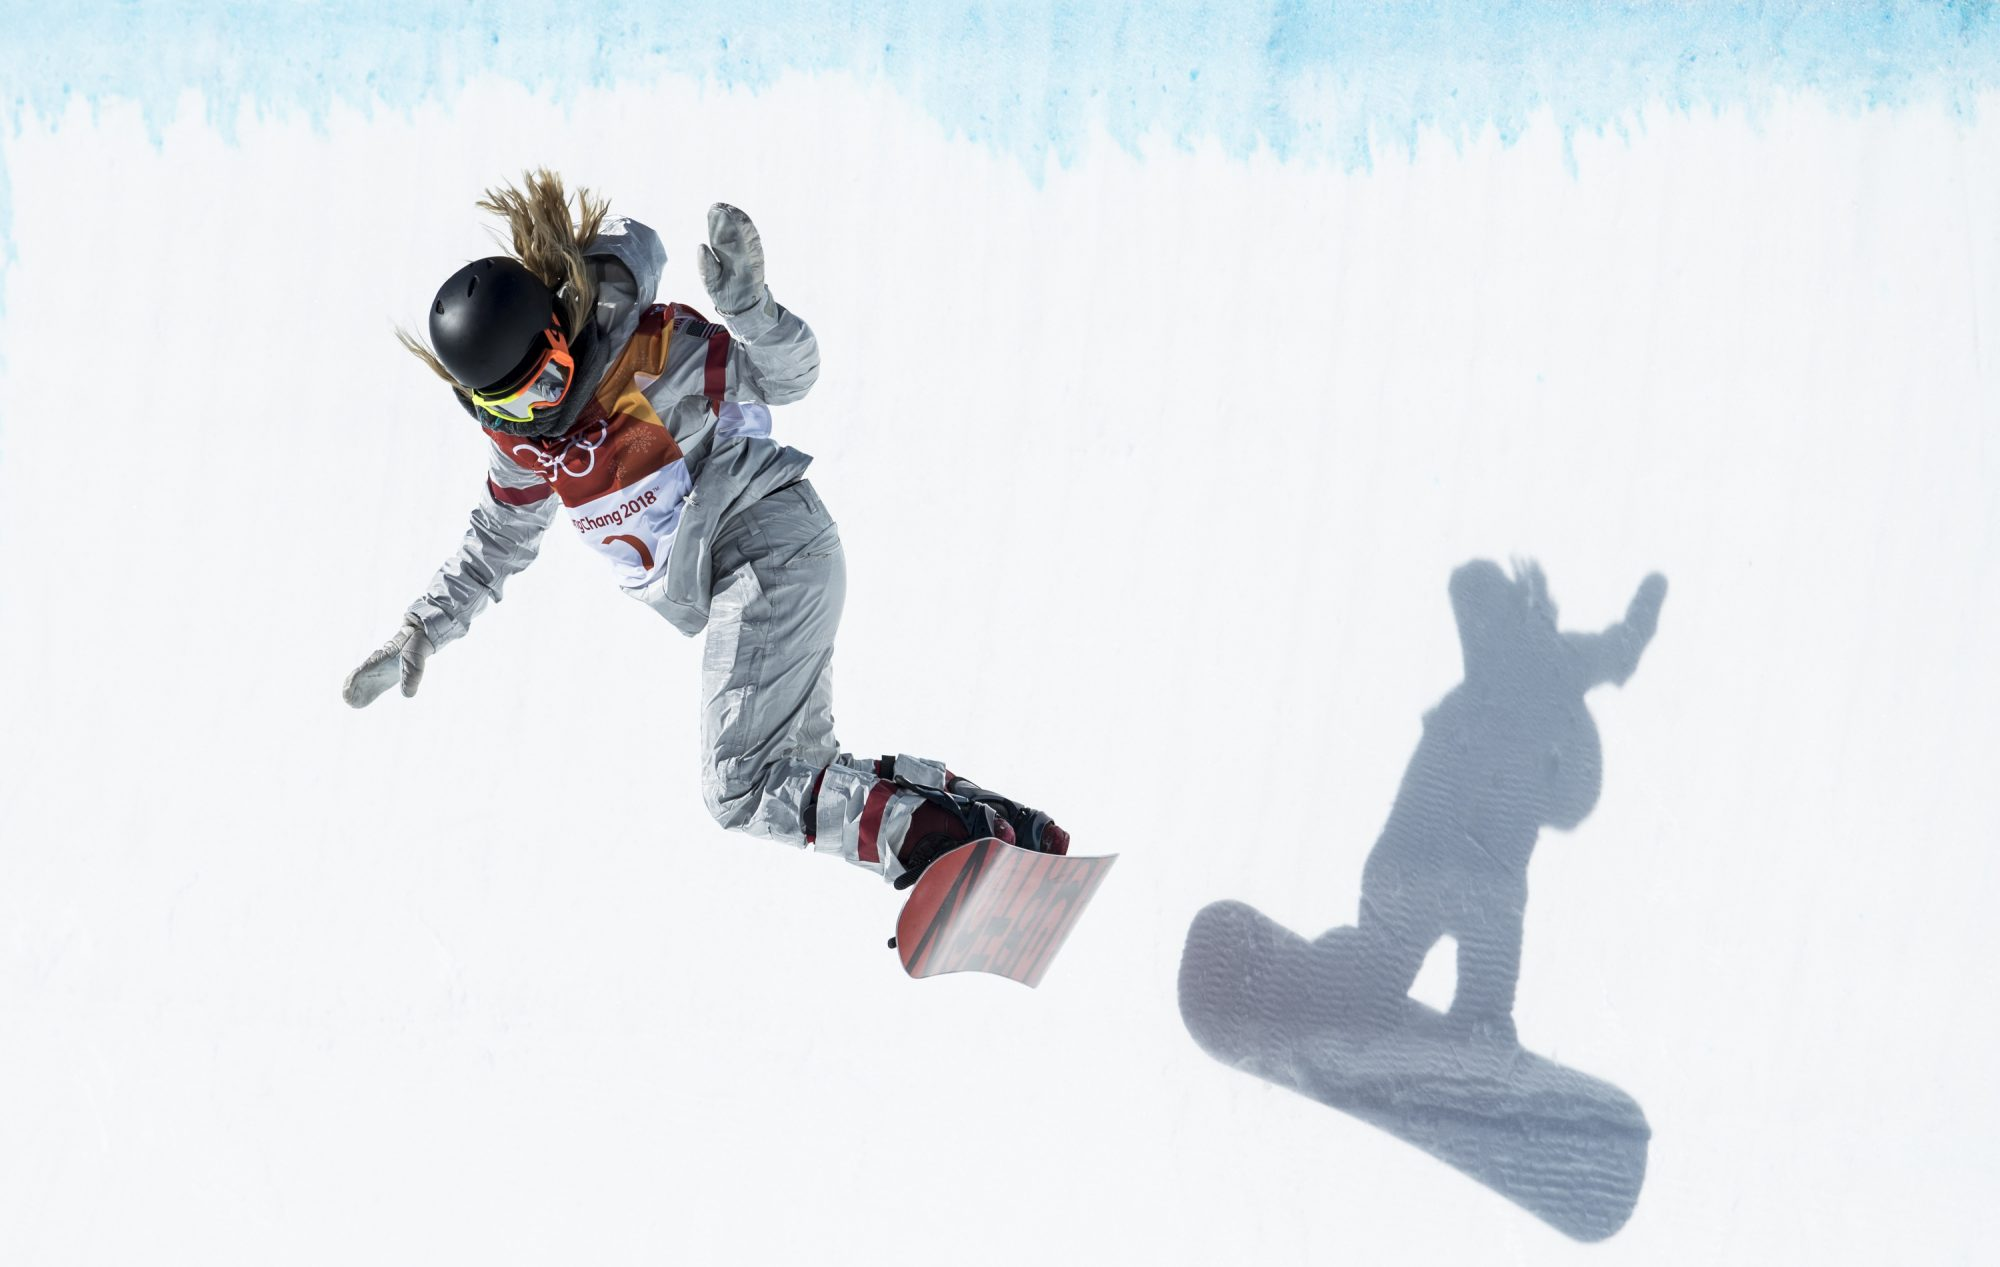 How many calories does snowboarding burn?